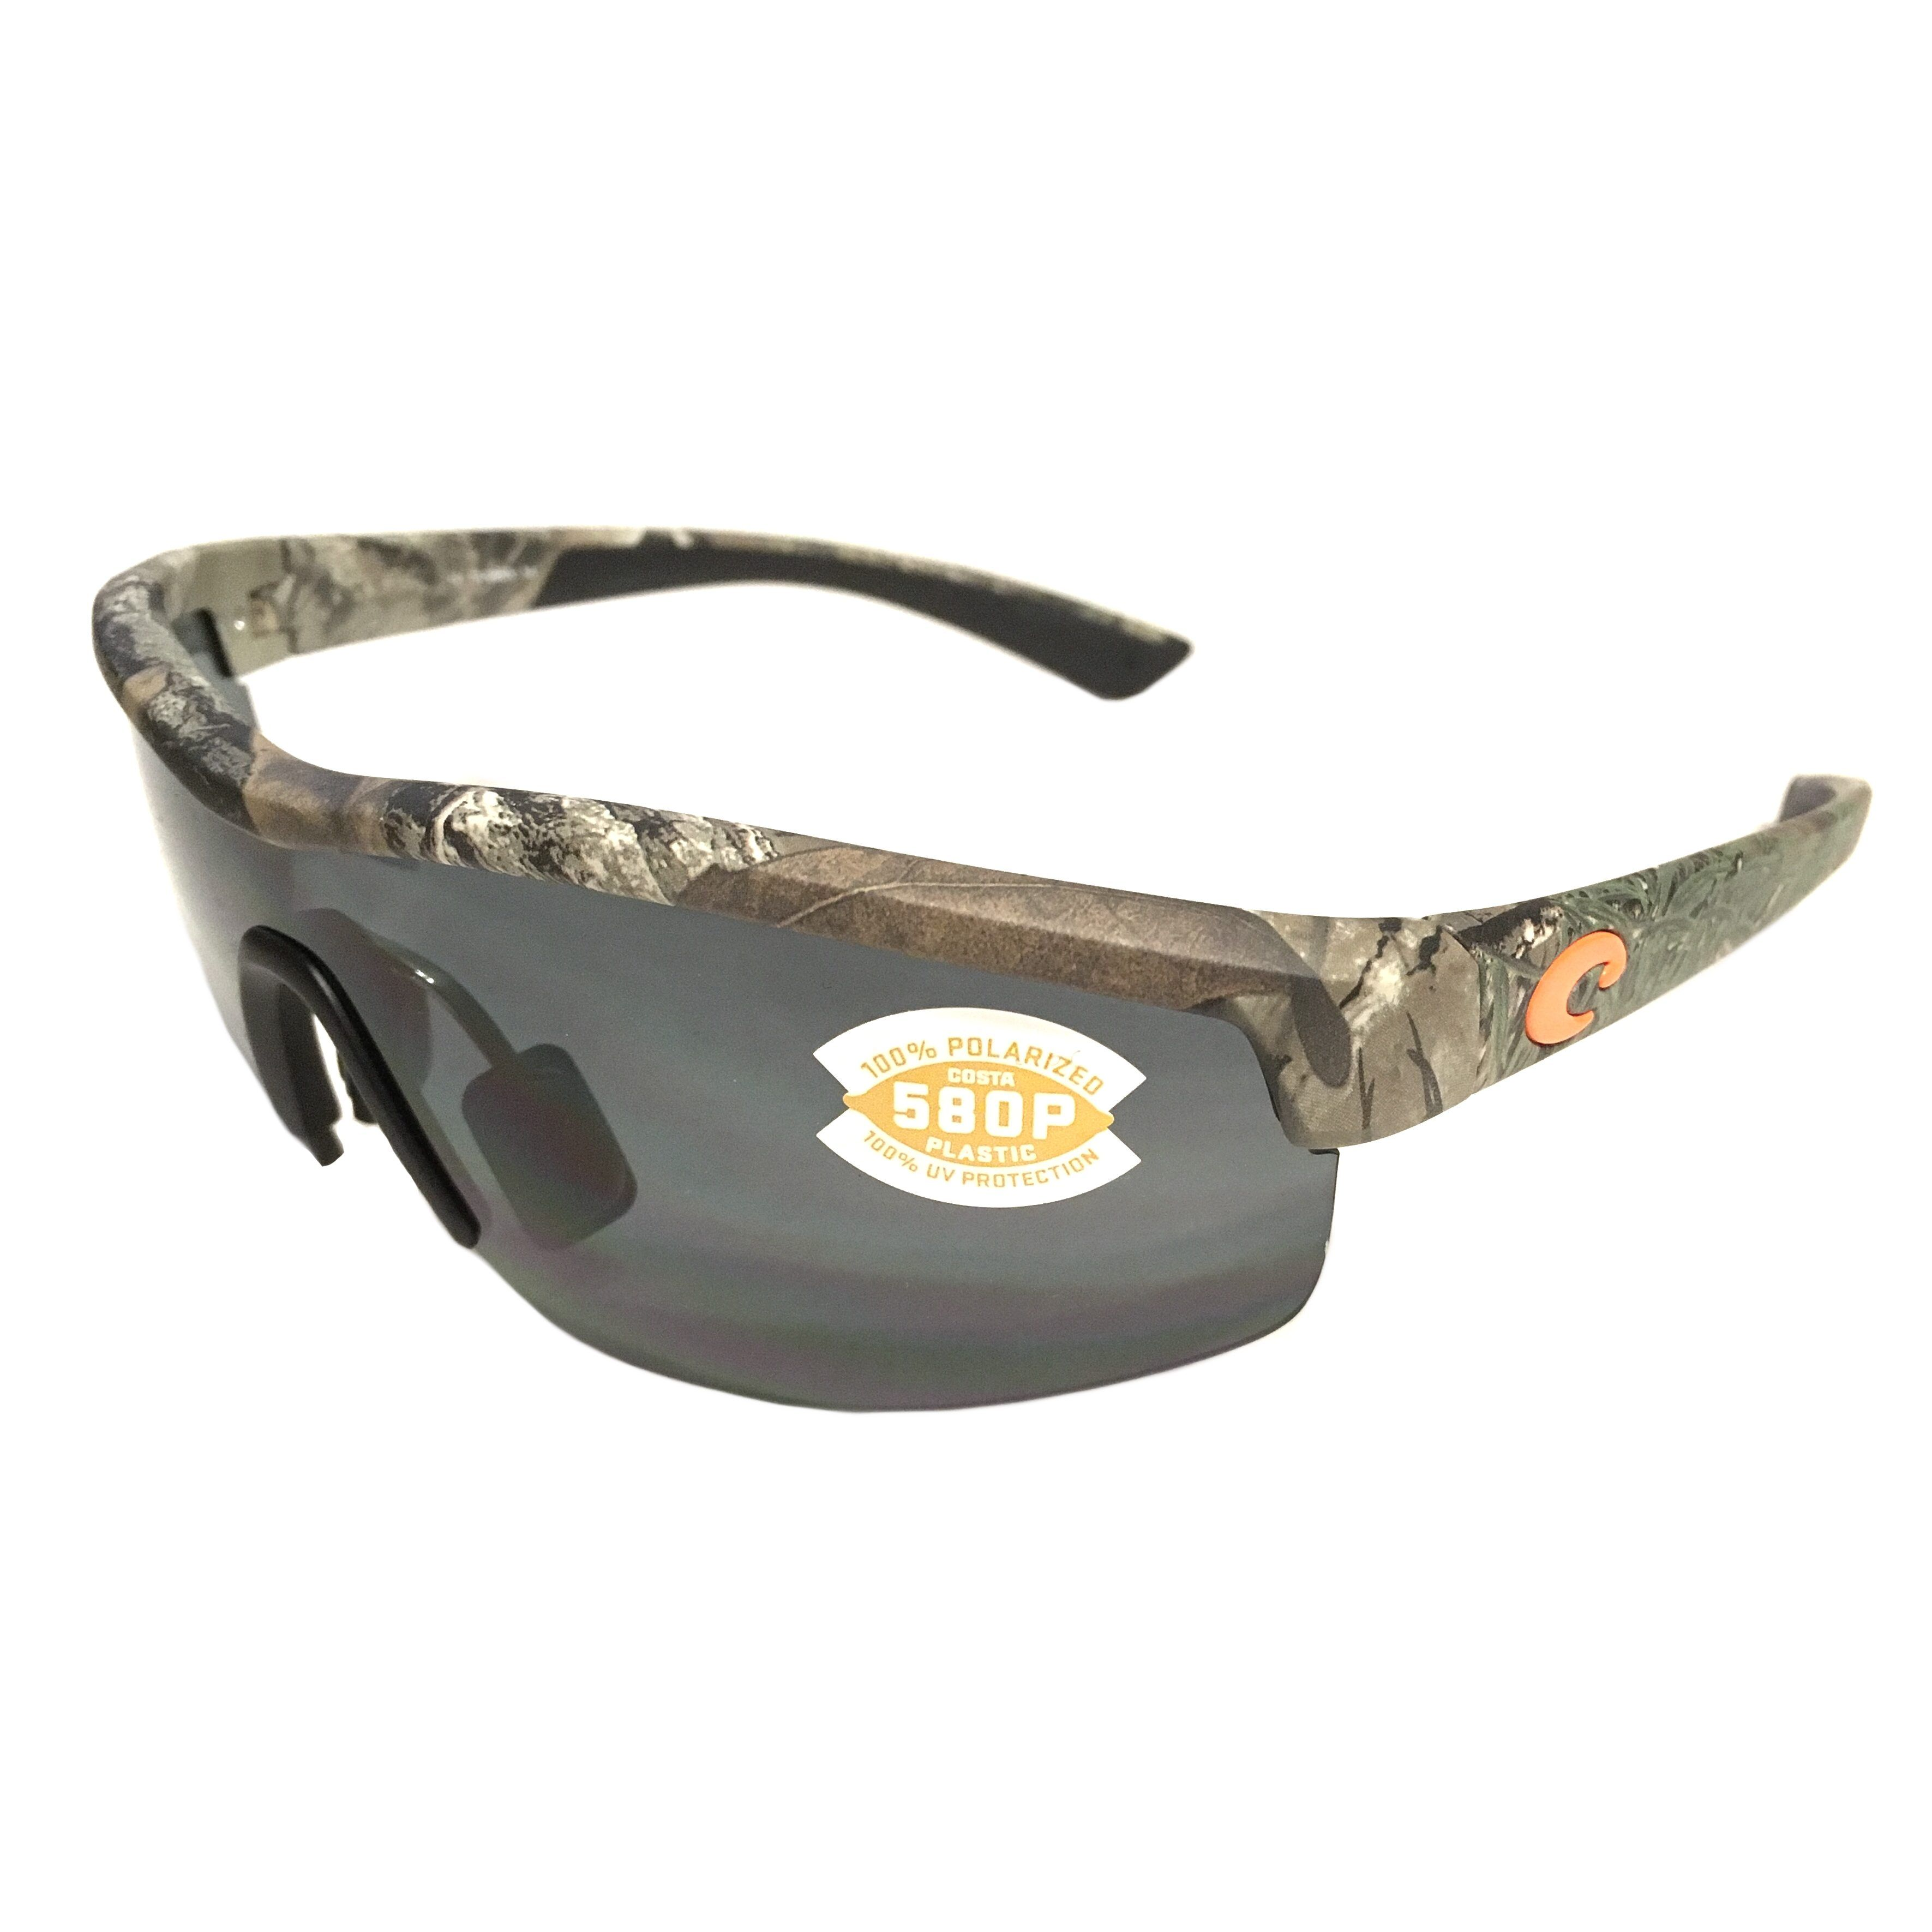 787bcba1e332 Badass sunglasses! Awesome for hunting, ATV sports, and on the water. Costa  Del Mar Straits Sunglasses - Realtree Xtra Camo - POLARIZED Gray 580P ...